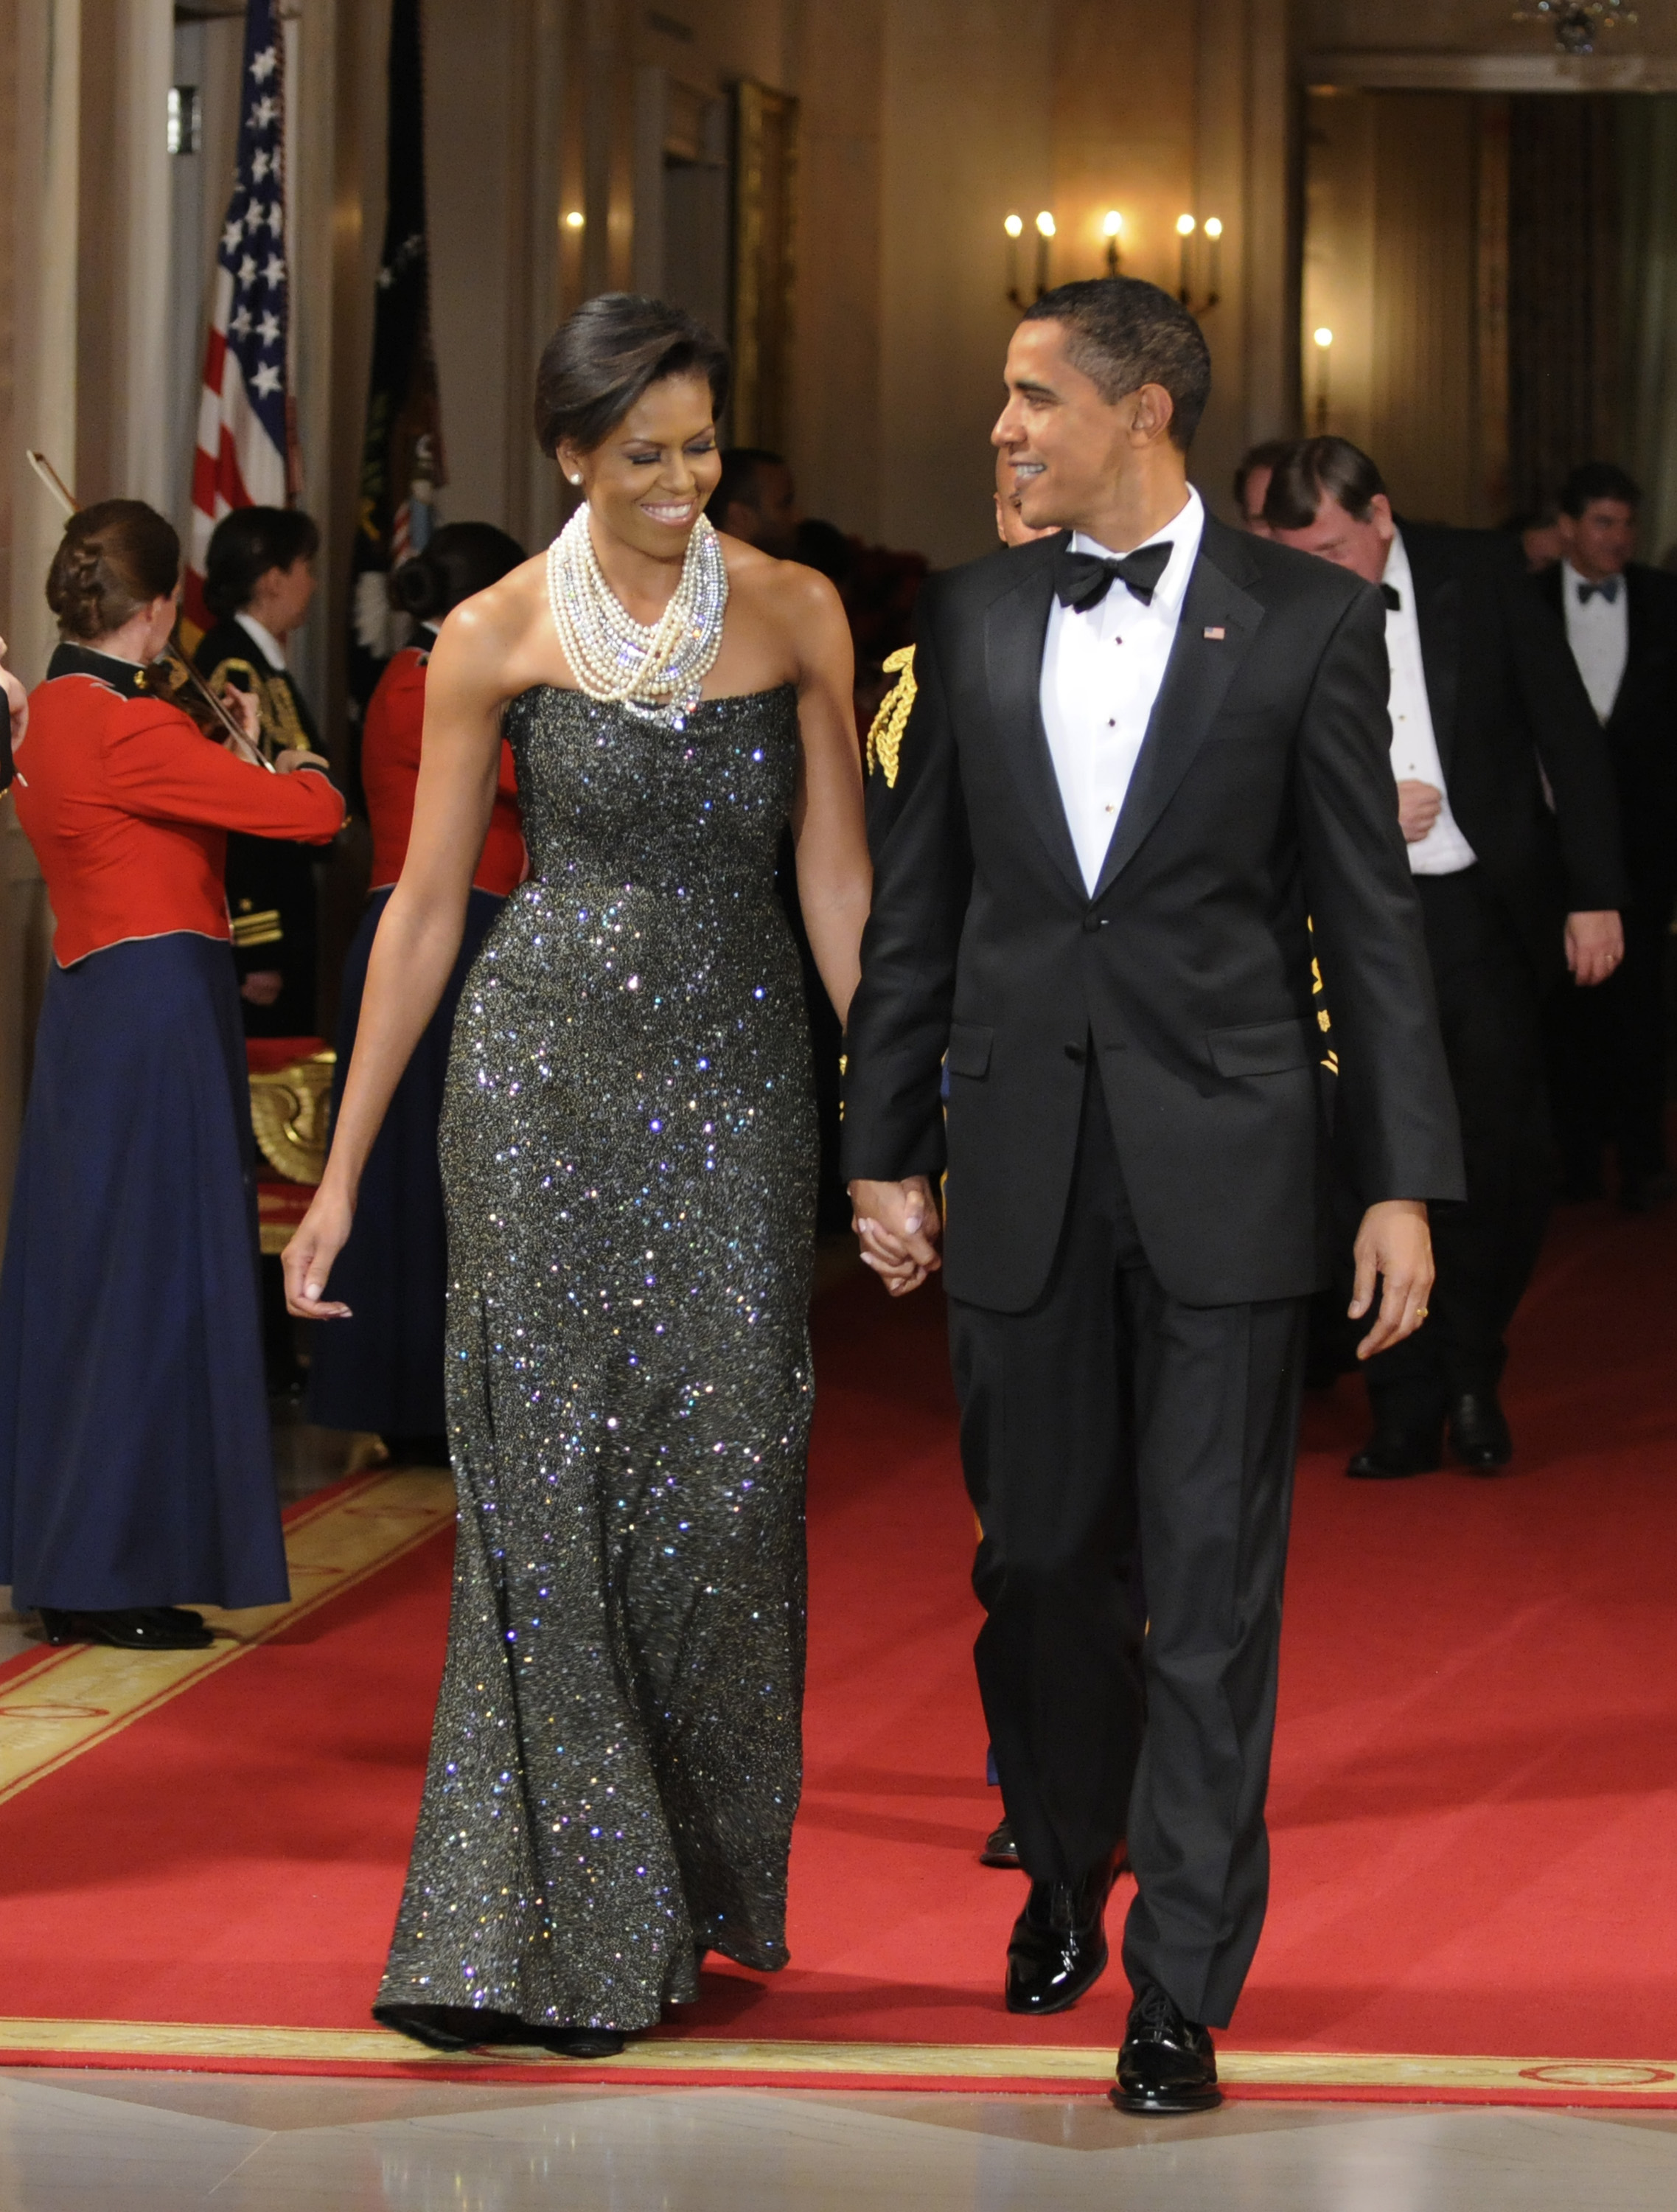 Former president Barack Obama and former first Lady Michelle Obama enter the East Room for entertainment after a black-tie dinner at the White House on February 22, 2009 in Washington, DC. (Photo by Mike Theiler-Pool/Getty Images)